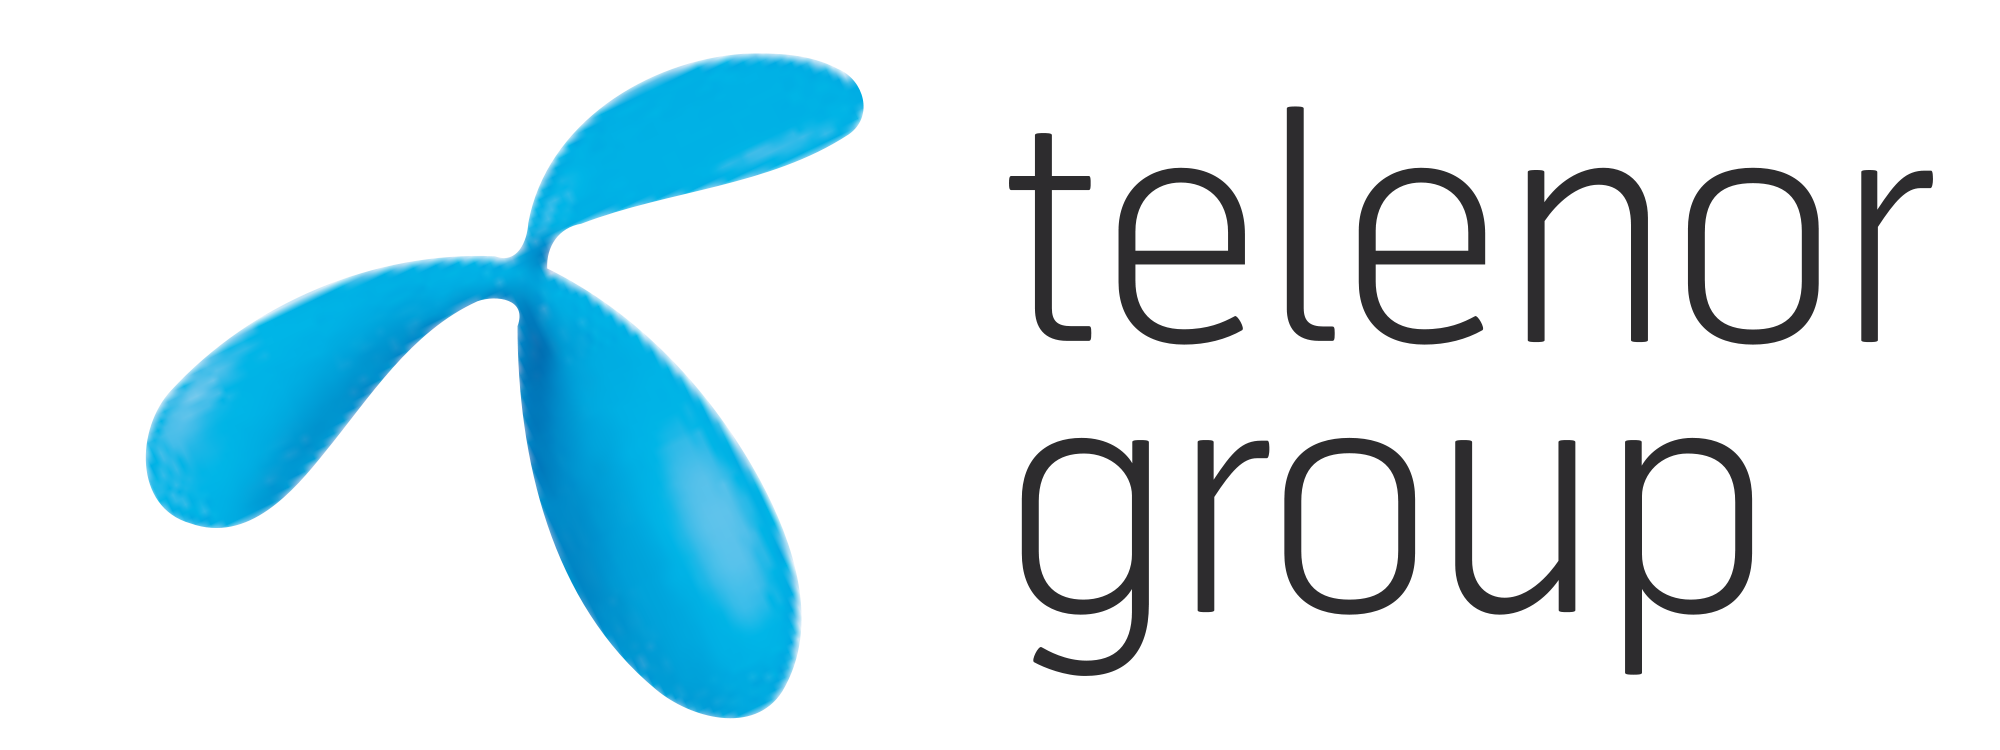 Telenor Group Logo Wallpaper